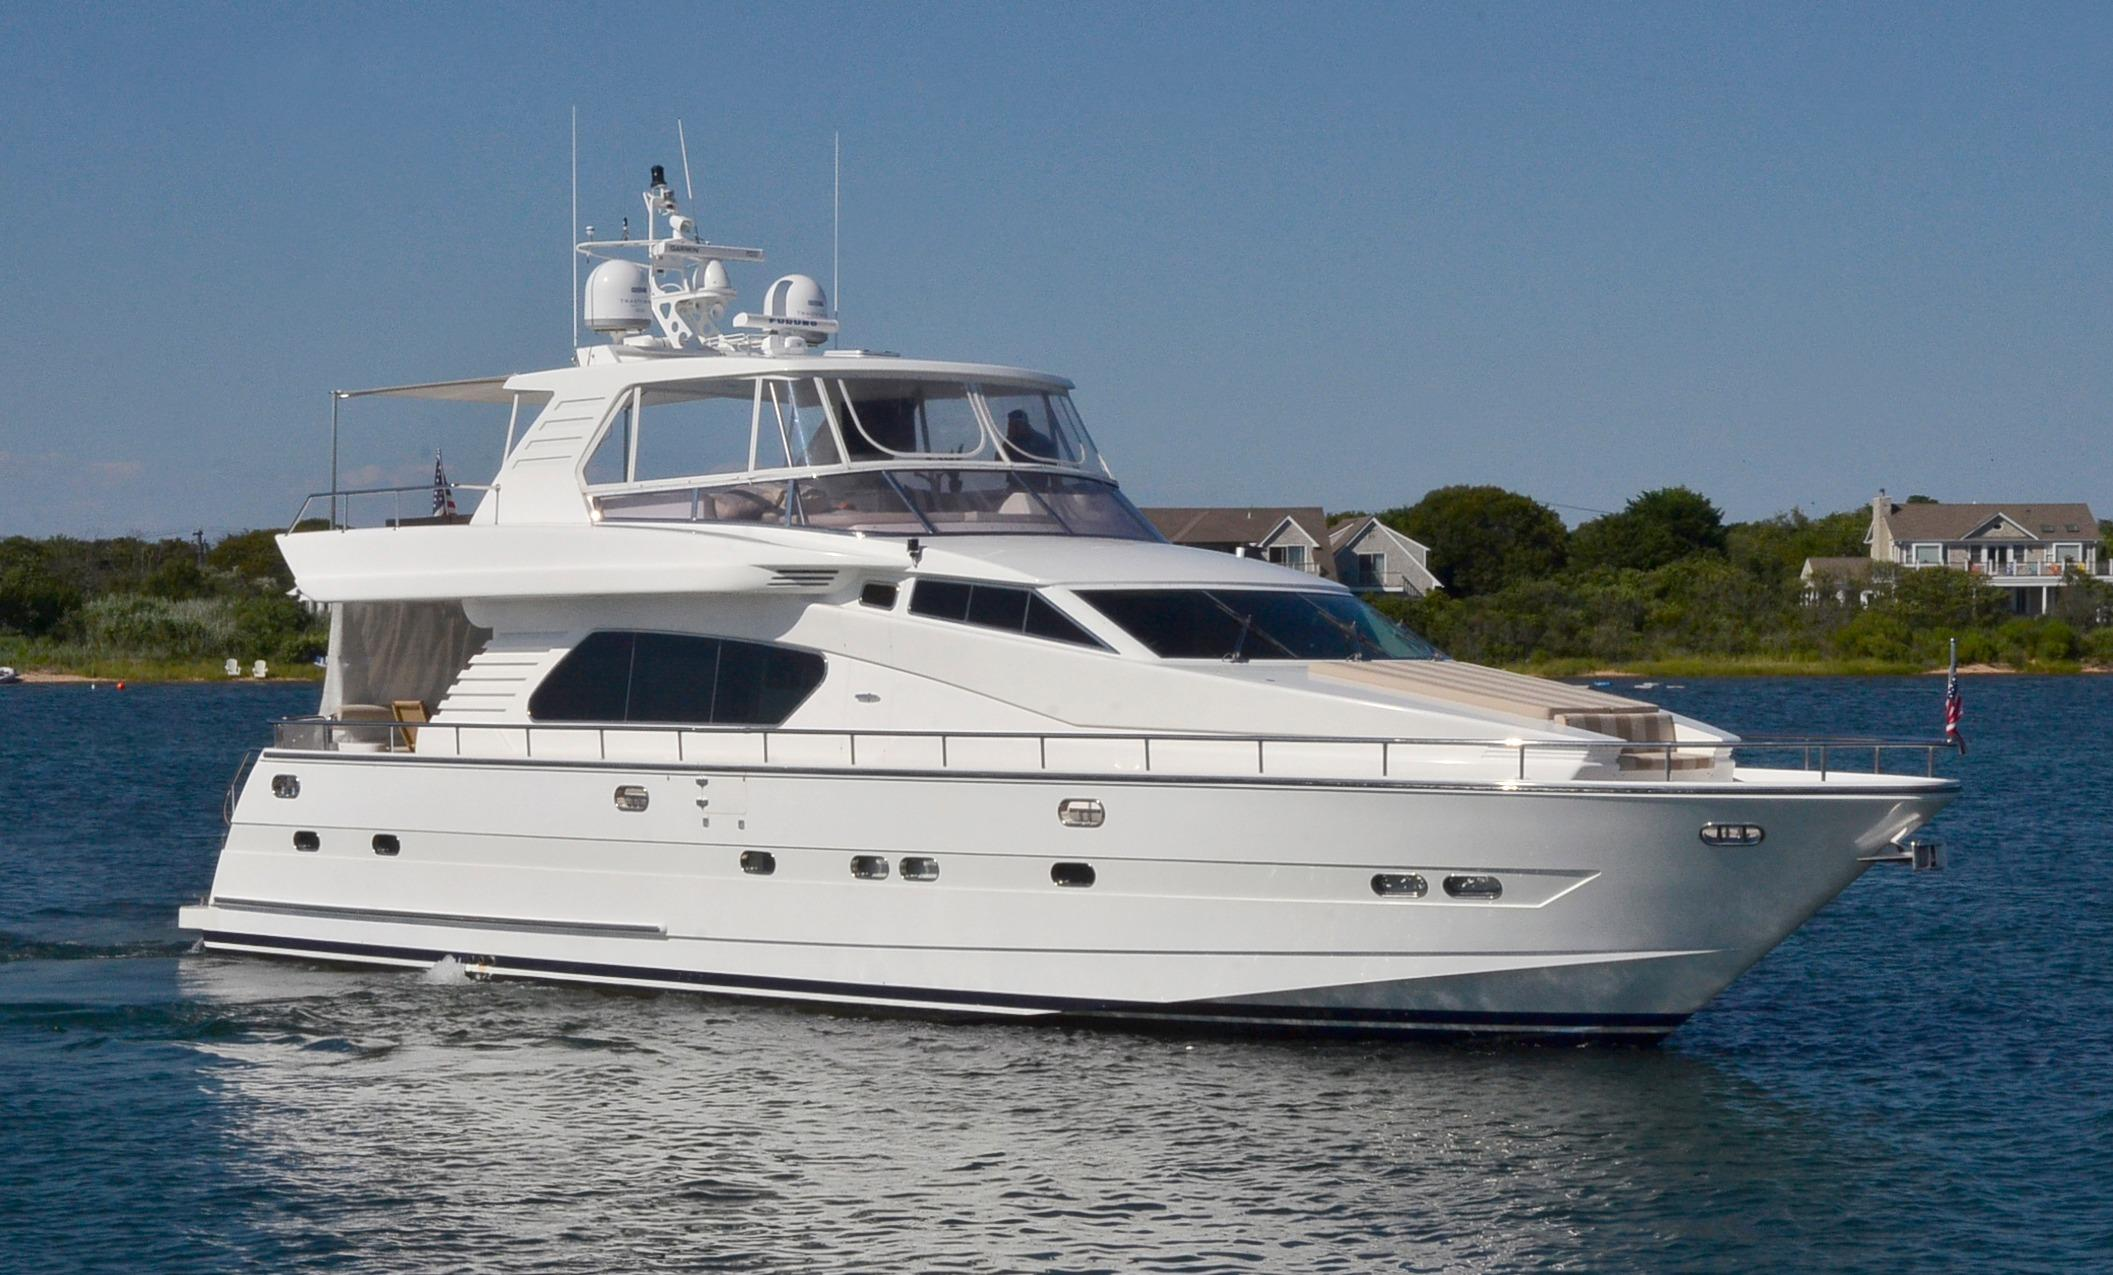 70 Horizon 1999 Ceviche For Sale In Montauk New York US Denison Yacht Sales